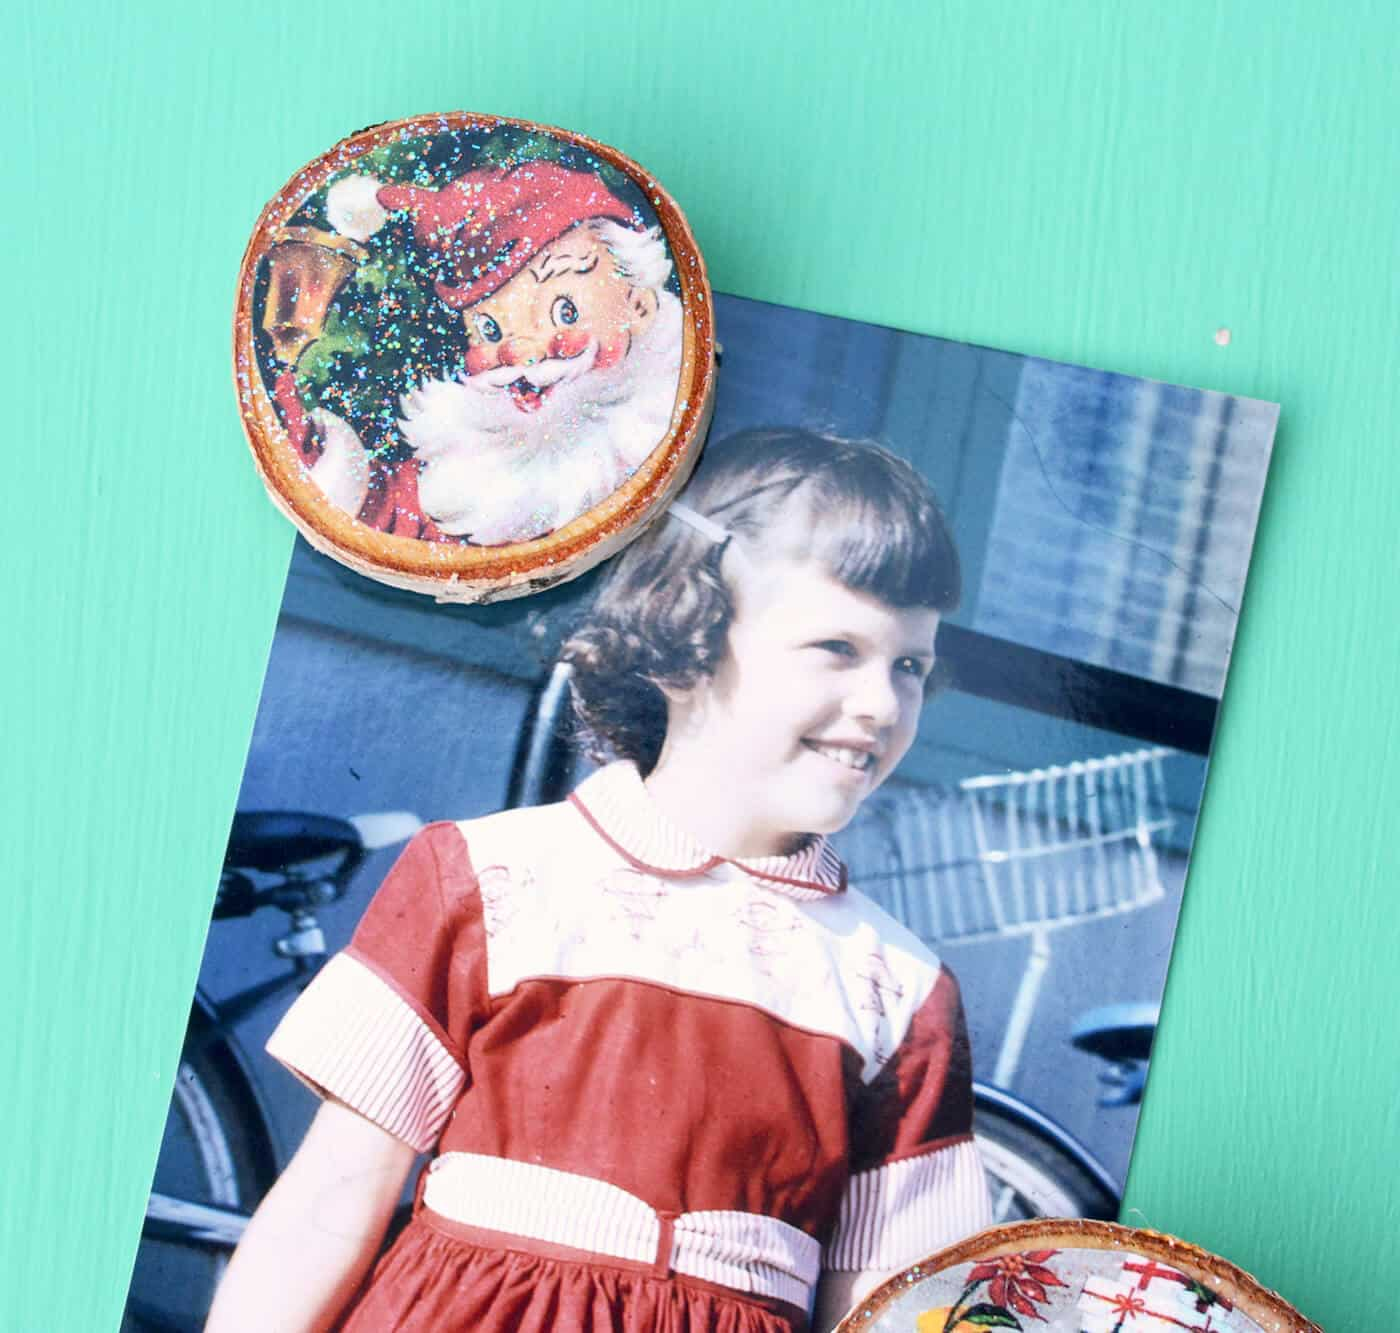 Learn how to make sparkly Christmas magnets with Mod Podge on wood slices